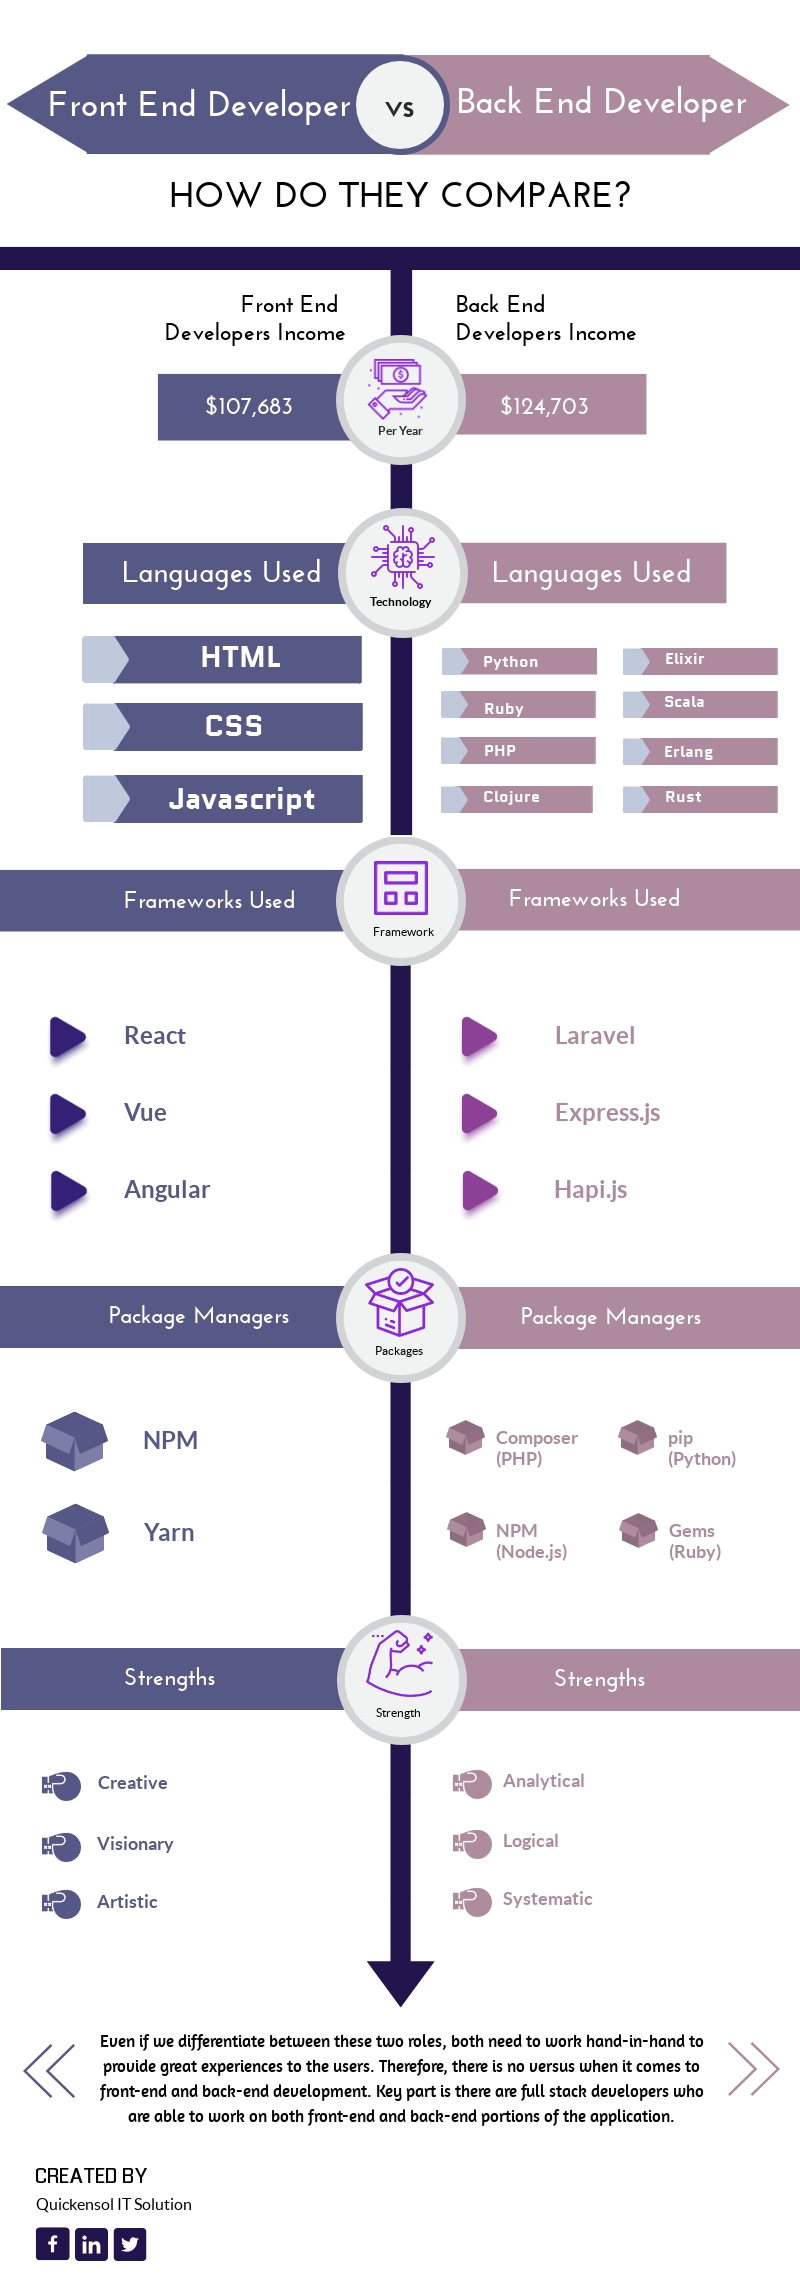 Career in Web Development: Front End Vs Back End - Infographic